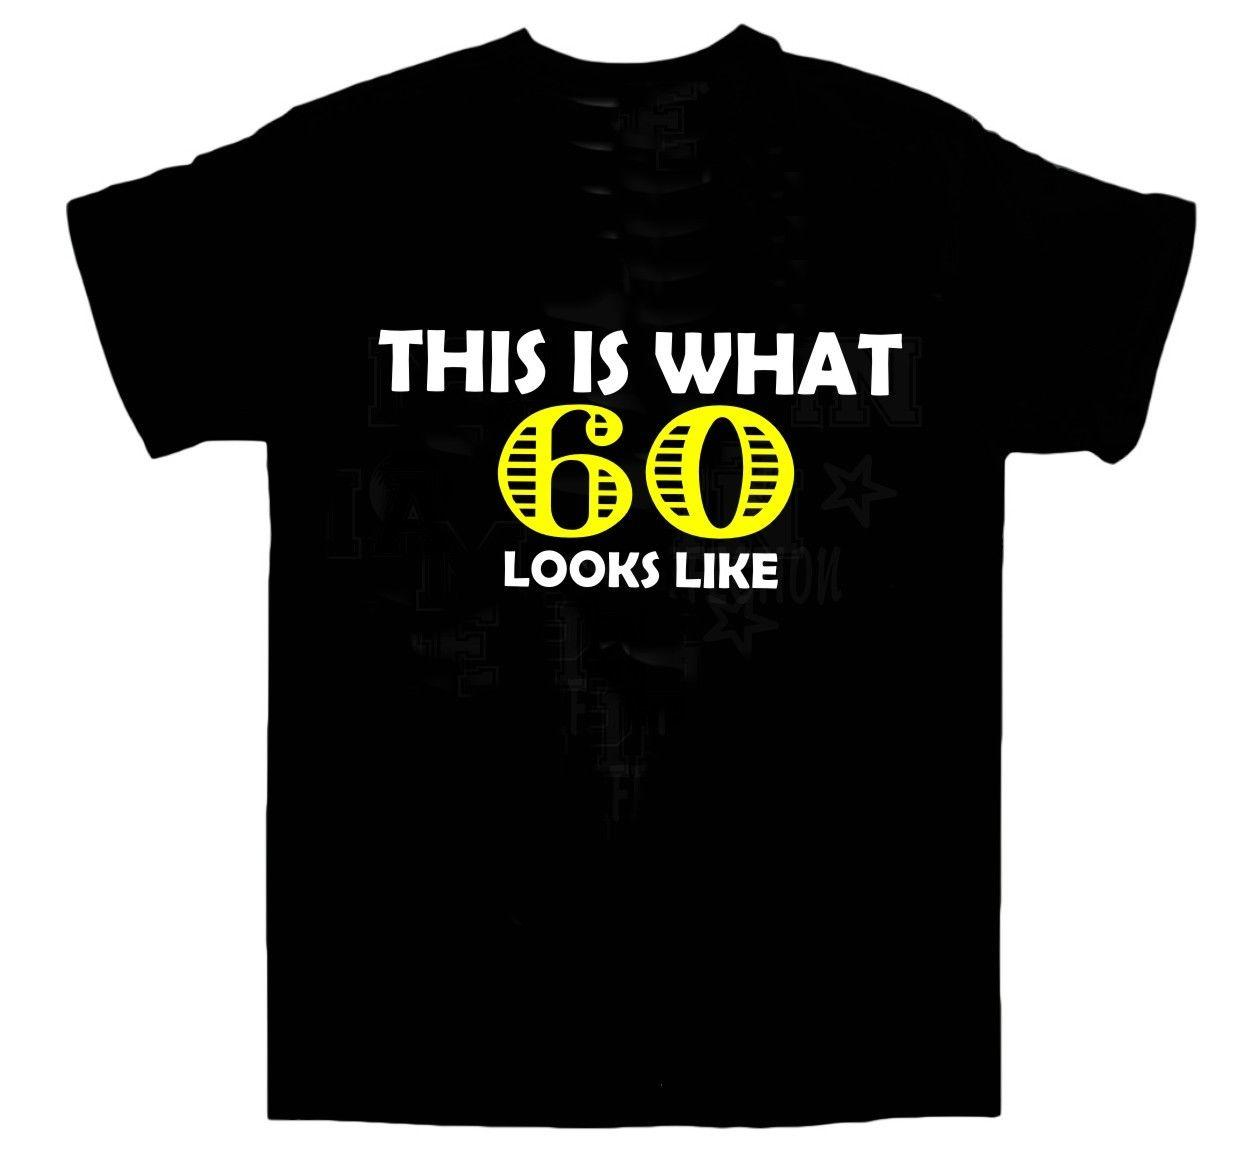 60th BIRTHDAY T Shirt This Is What Great Birthday Christmas Gift Size S Funny Unisex Tshirt Top Printed Shirts Cool Tee From Tshirtbakers